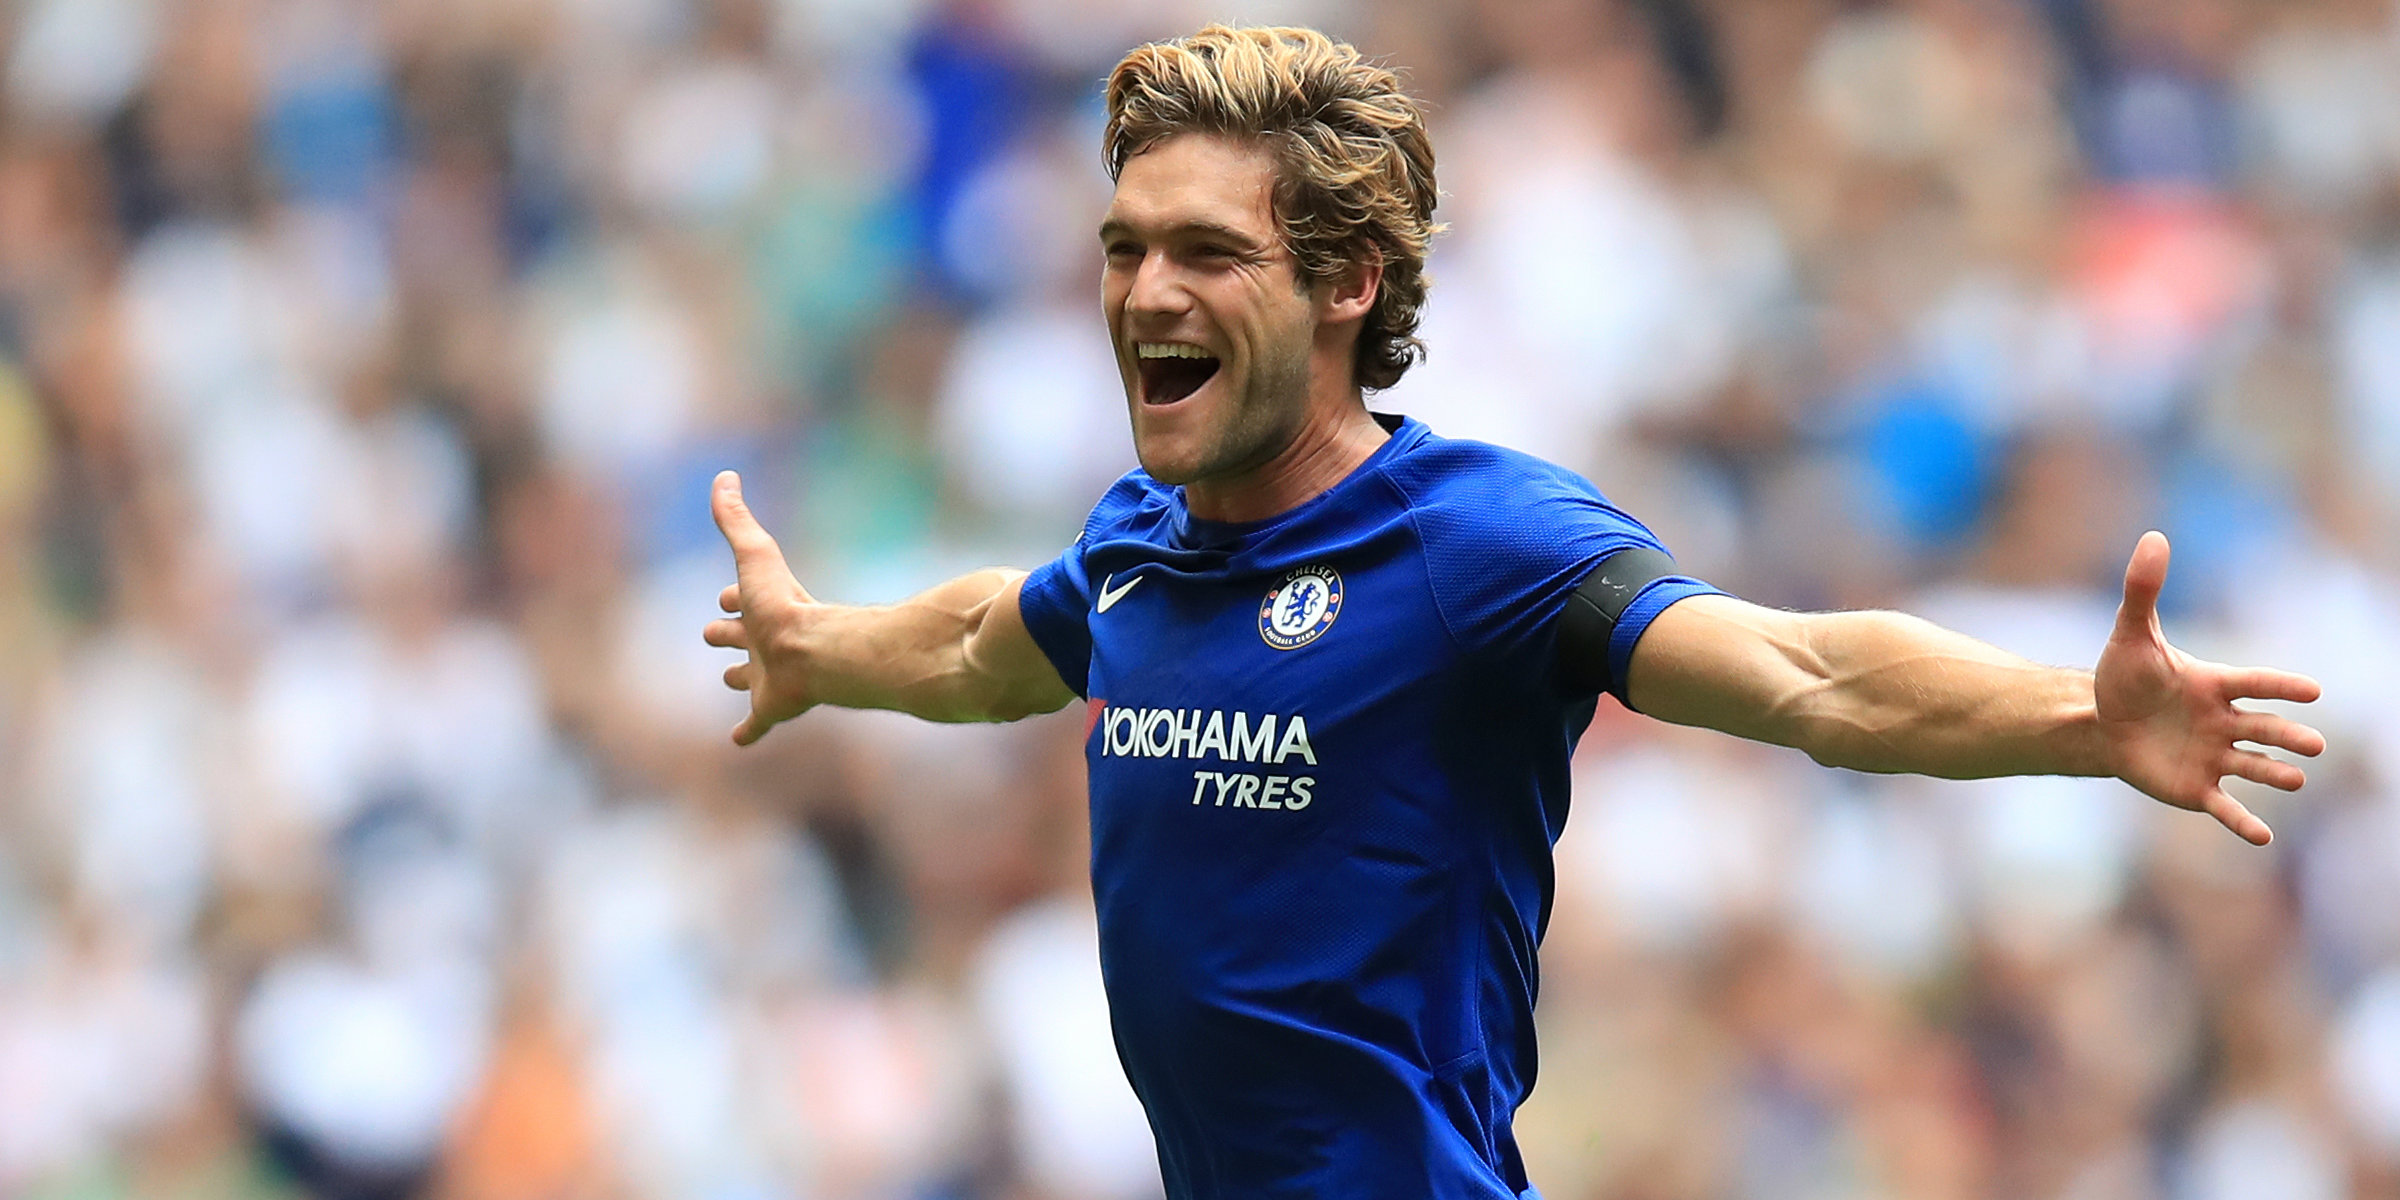 Alonso's brilliant goal gives Chelsea victory